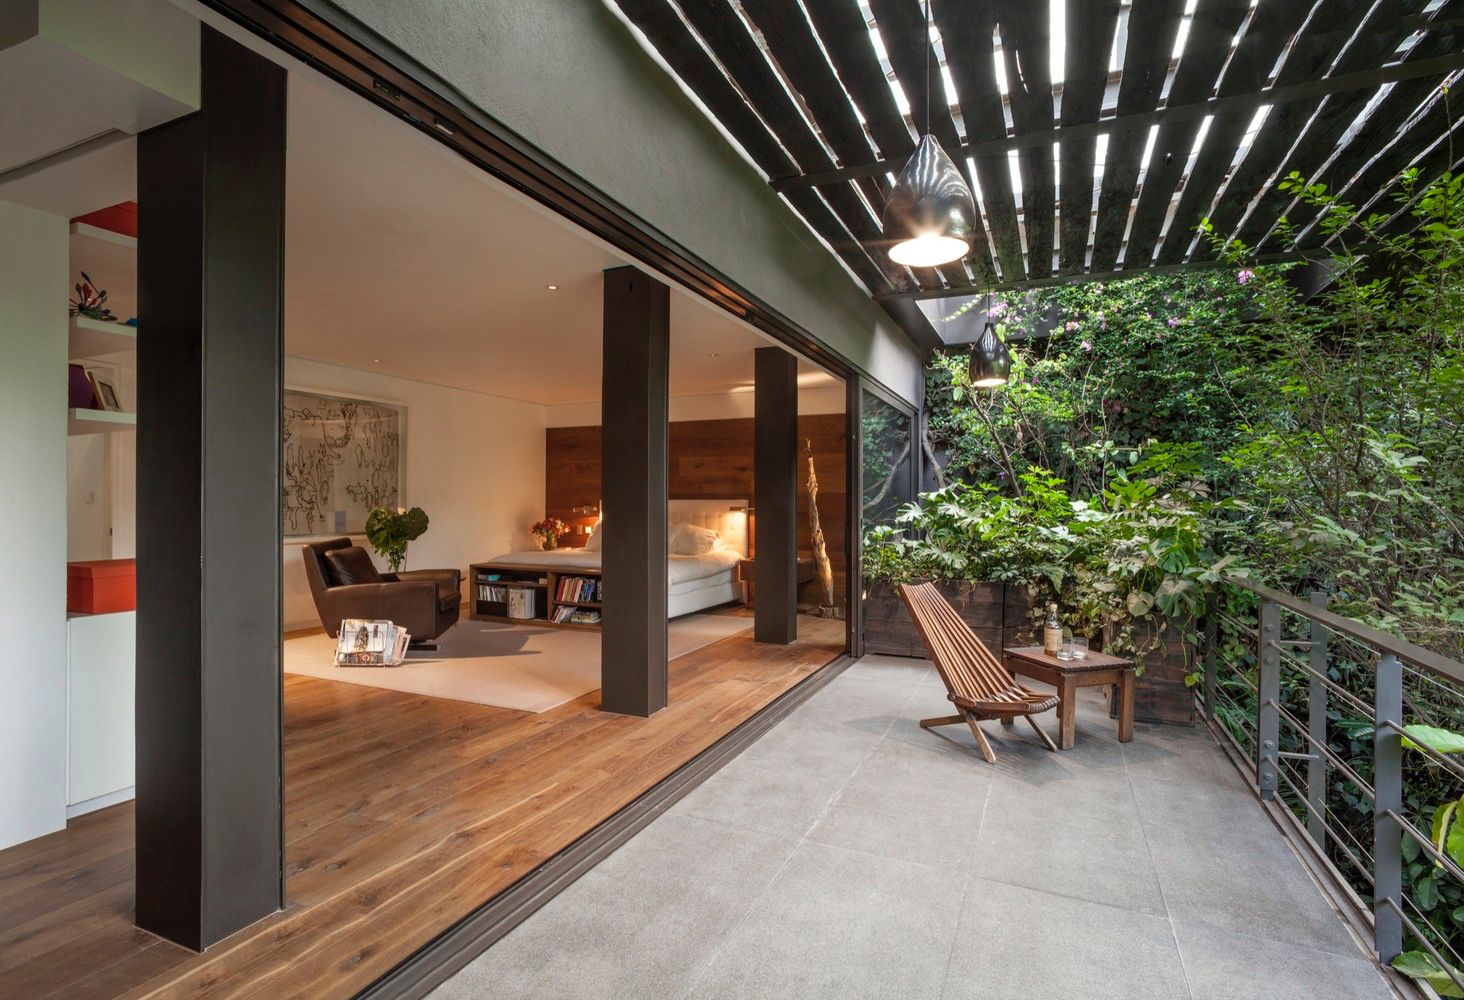 interior design with a natural view